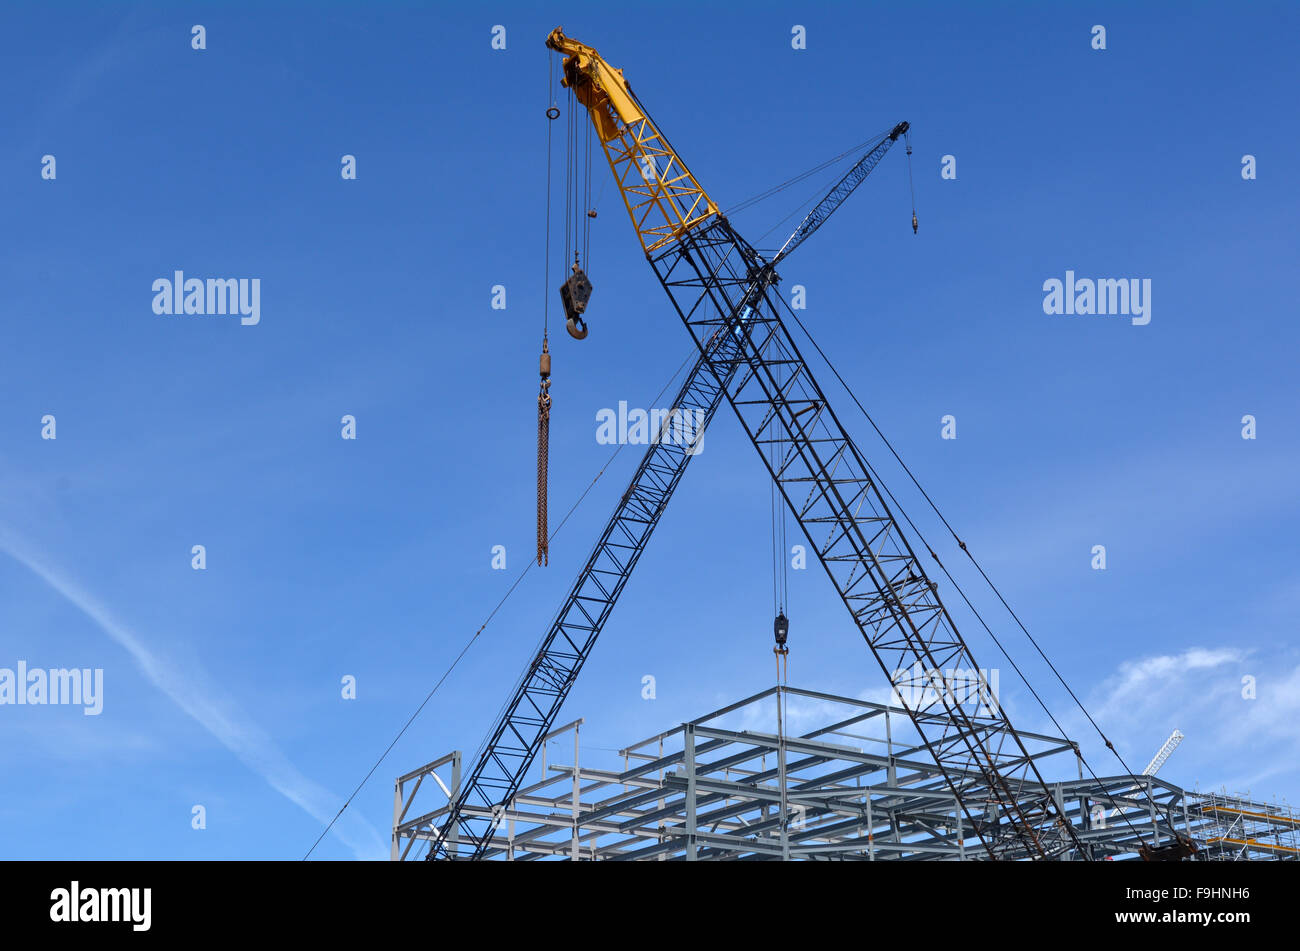 Cranes in construction site against blue sky. Construction work concept - Stock Image